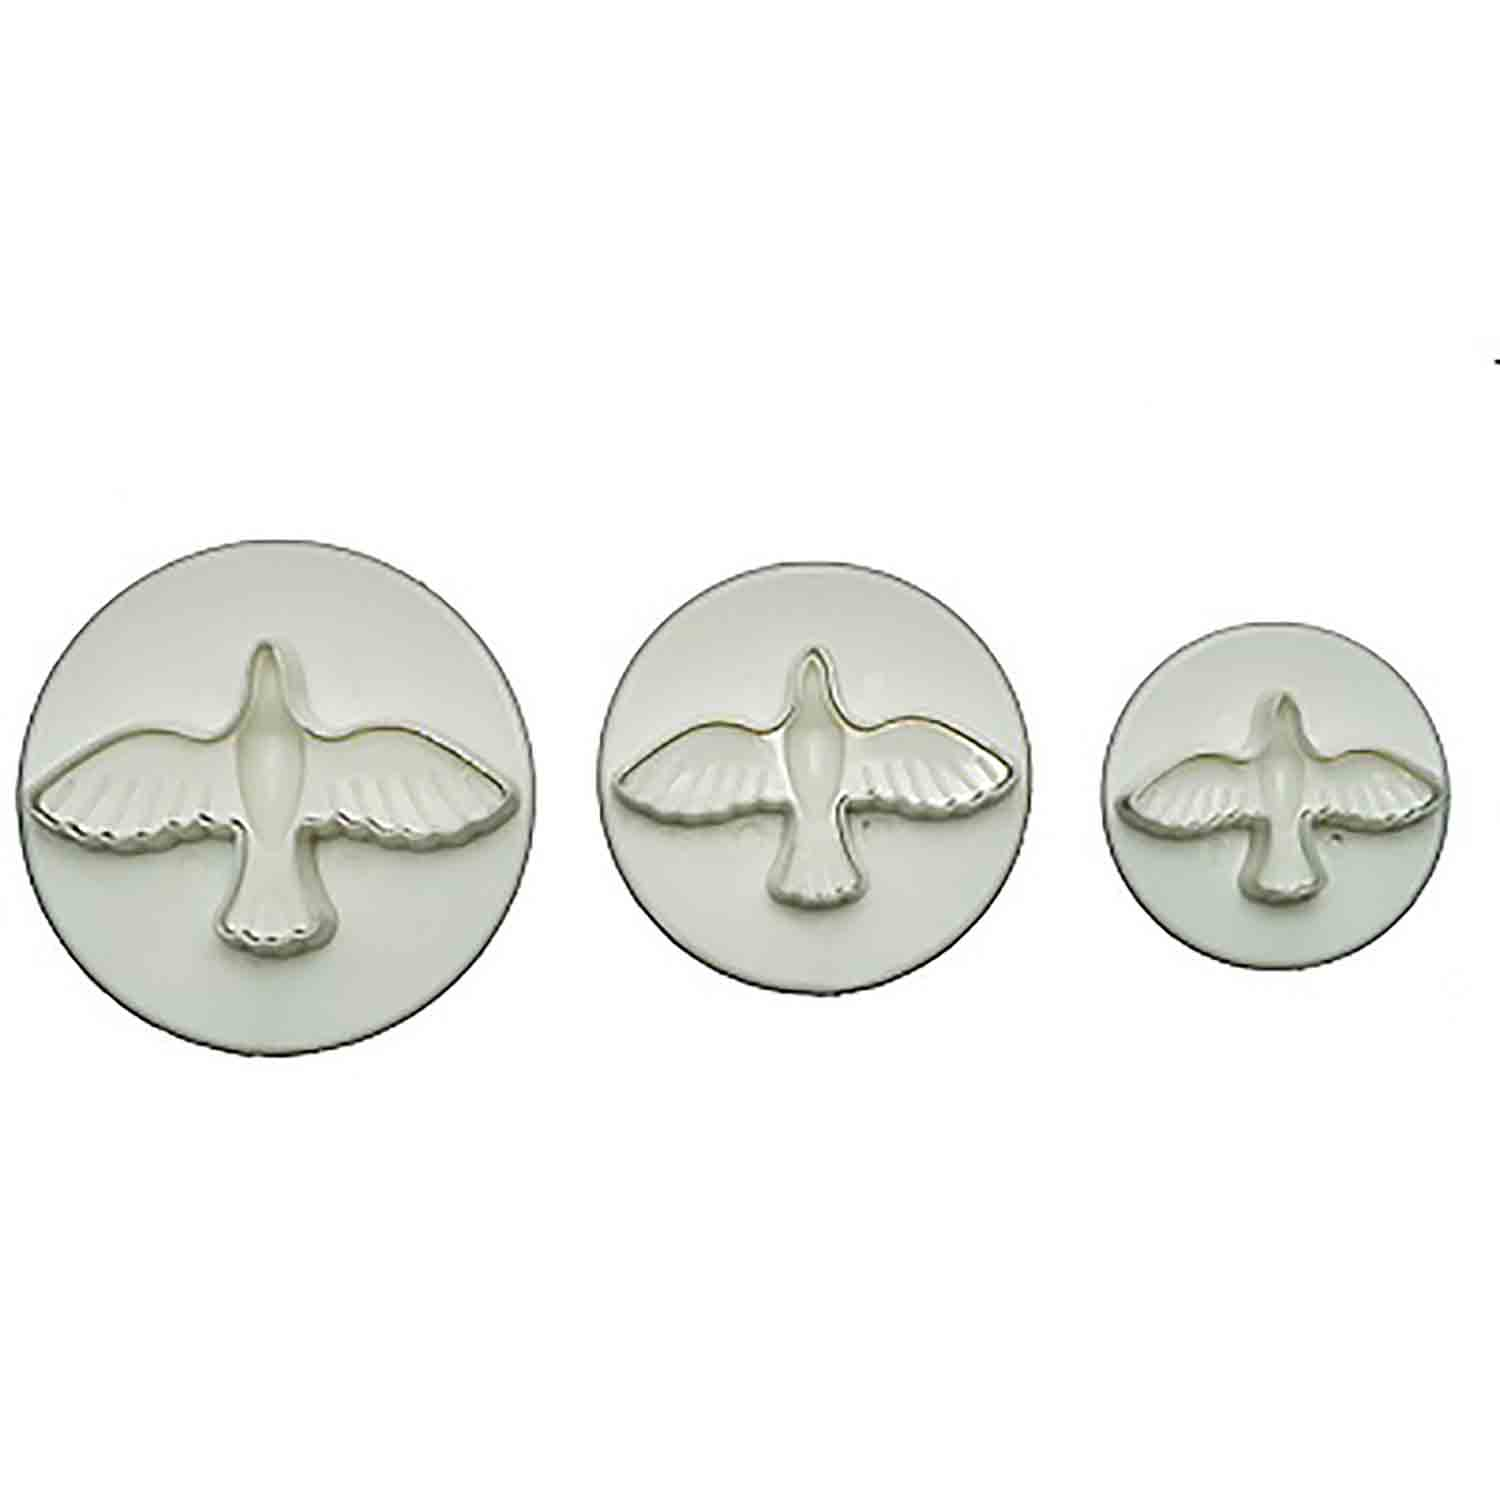 Small Dove Plunger Cutter Set